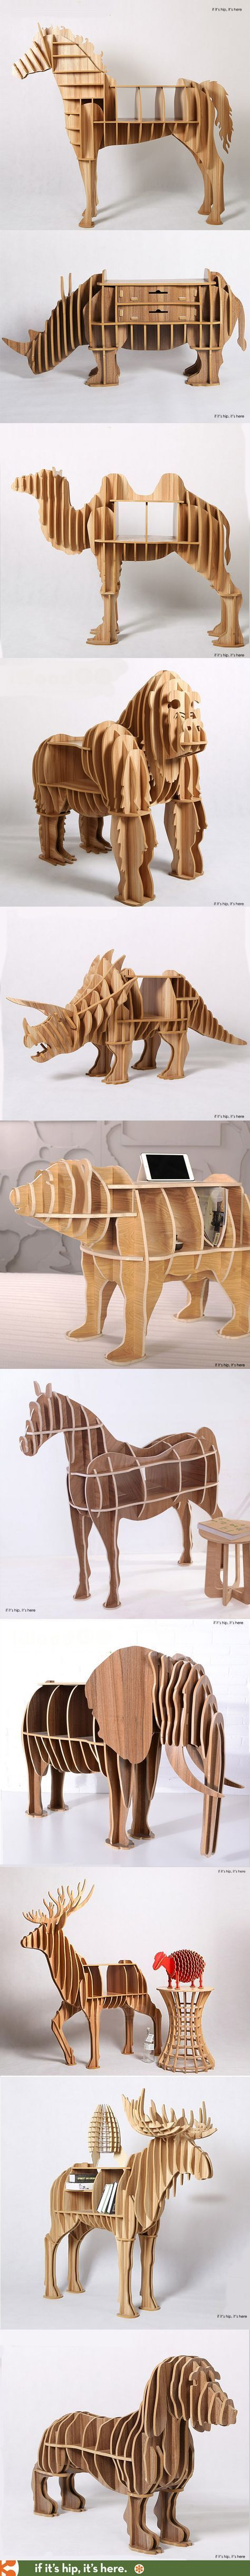 The 20 Most Awesome Animal Bookcases, Desks And End Tables You Can Buy They